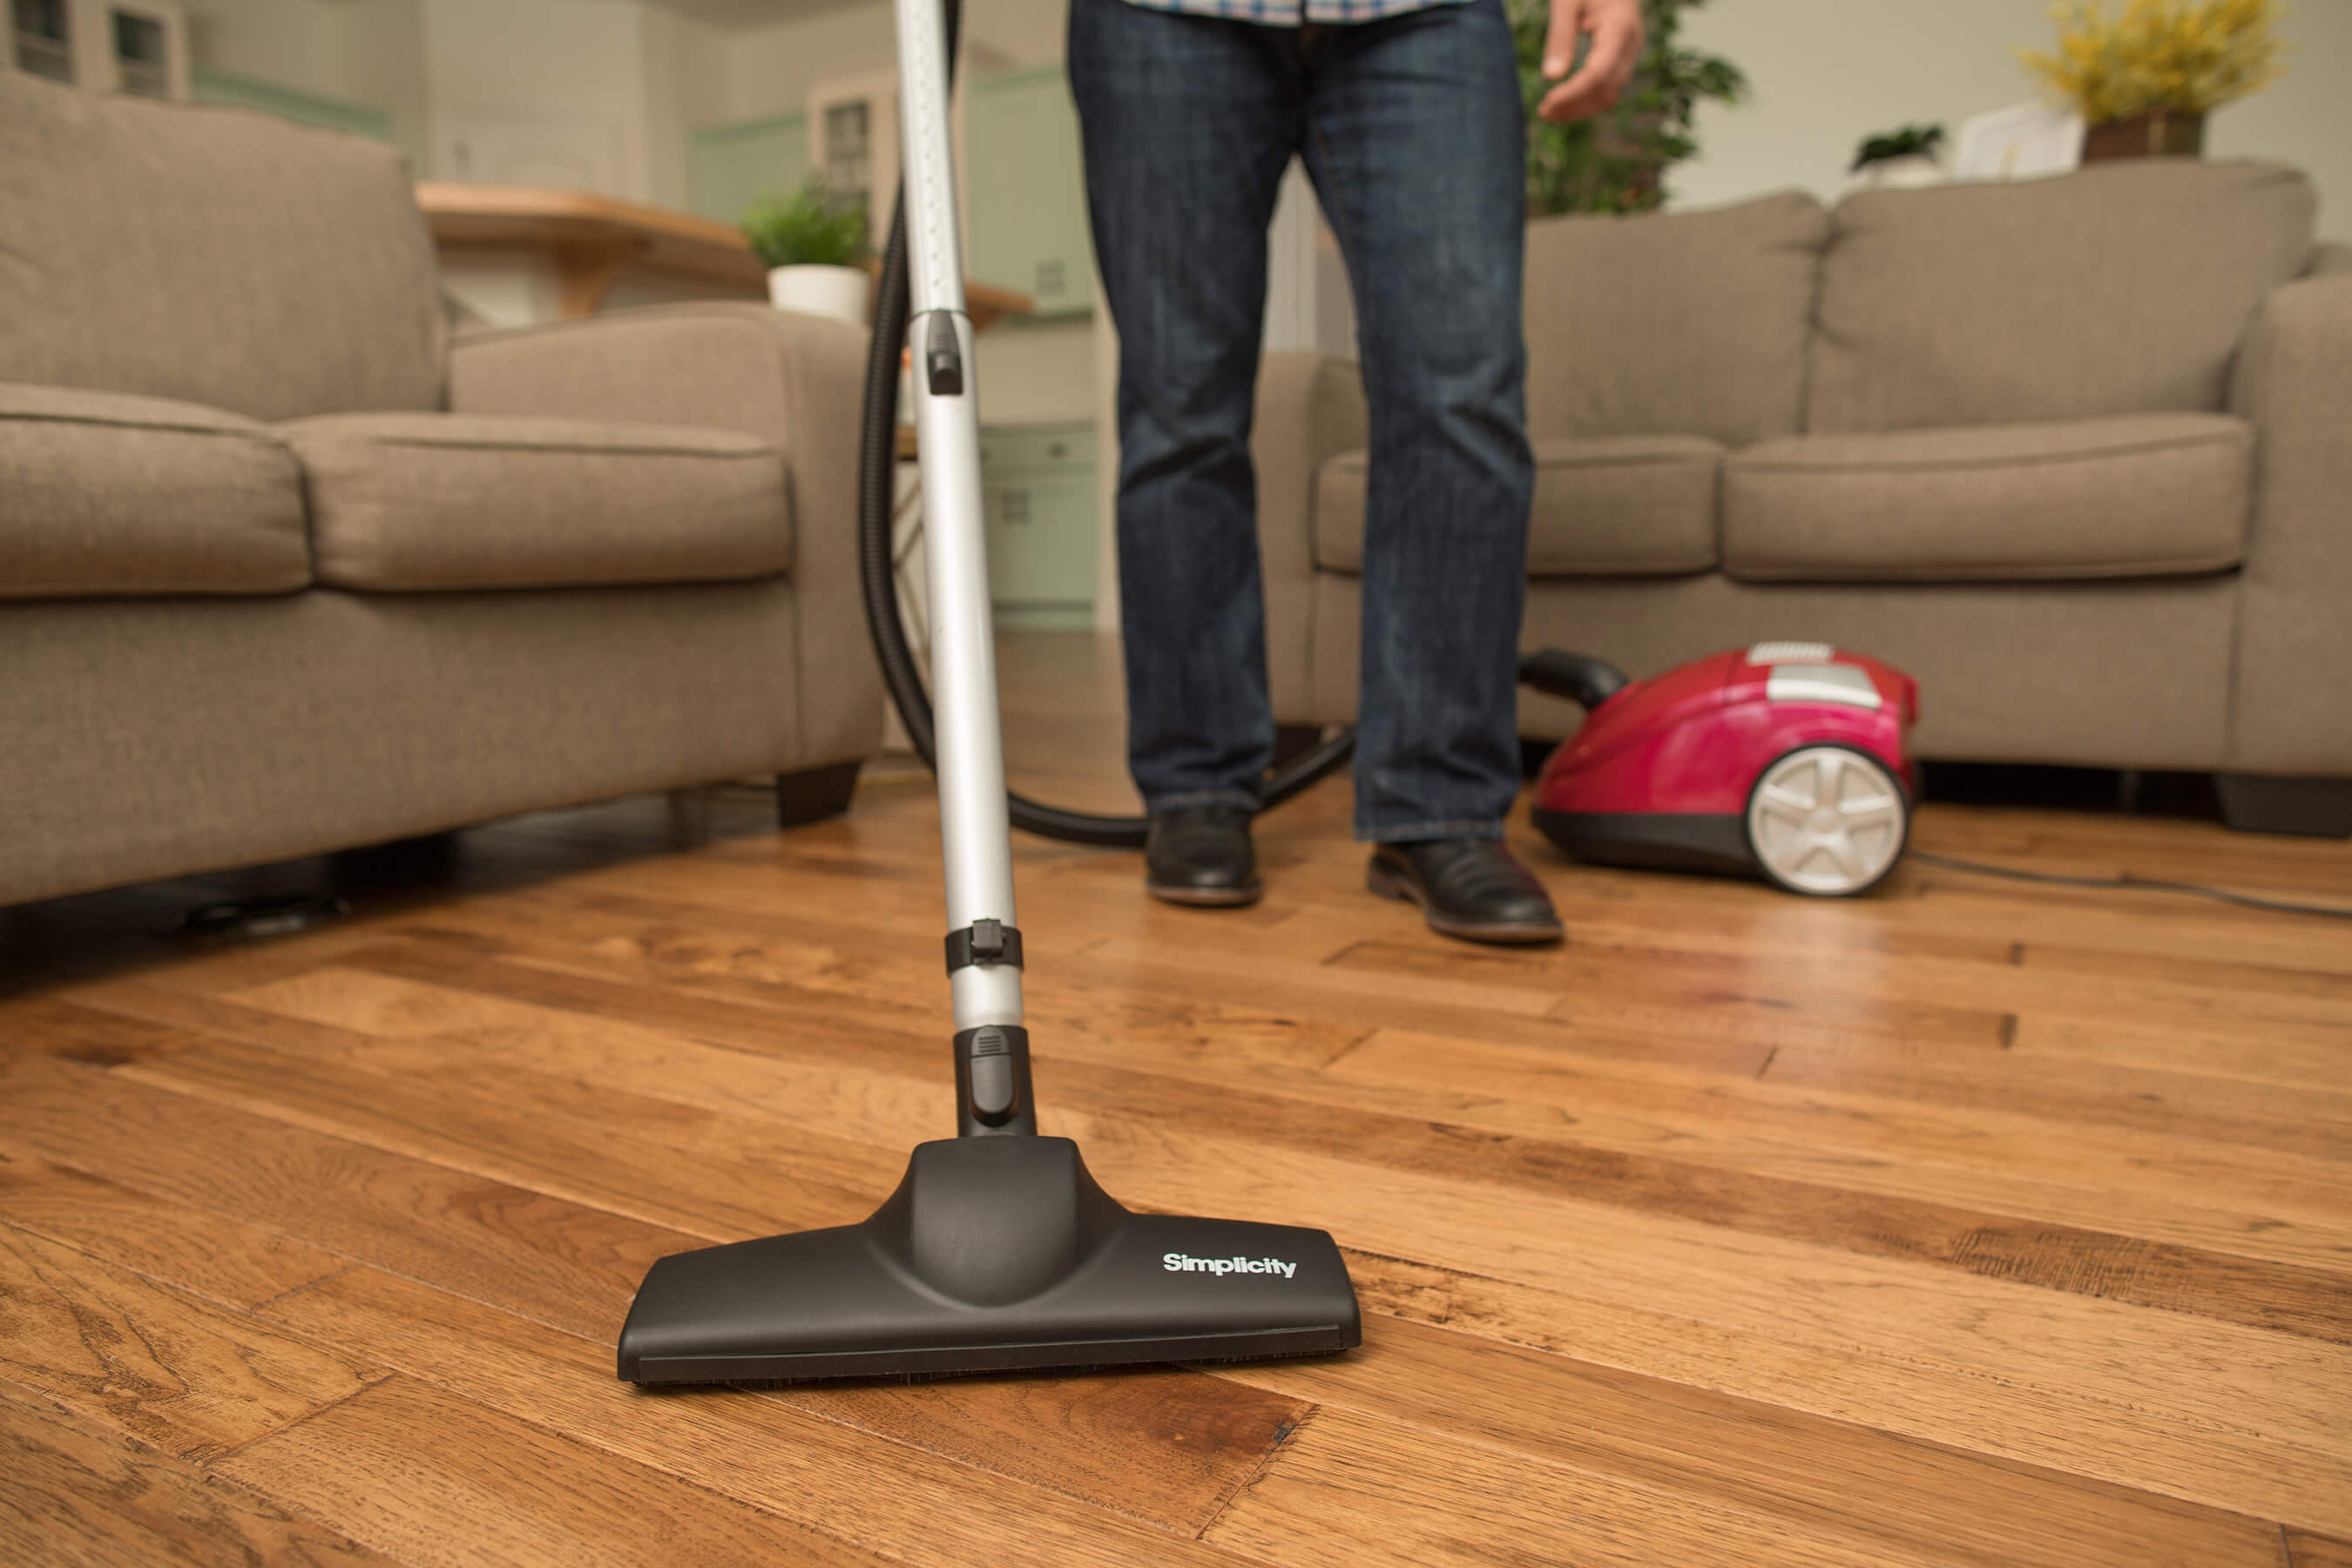 lightweight hardwood floor vacuum reviews of jill compact canister vacuum cleaner for this spunky lightweight little canister comes with handy tools that mount on the metal wand and are perfect for cleaning nooks blinds and everything else